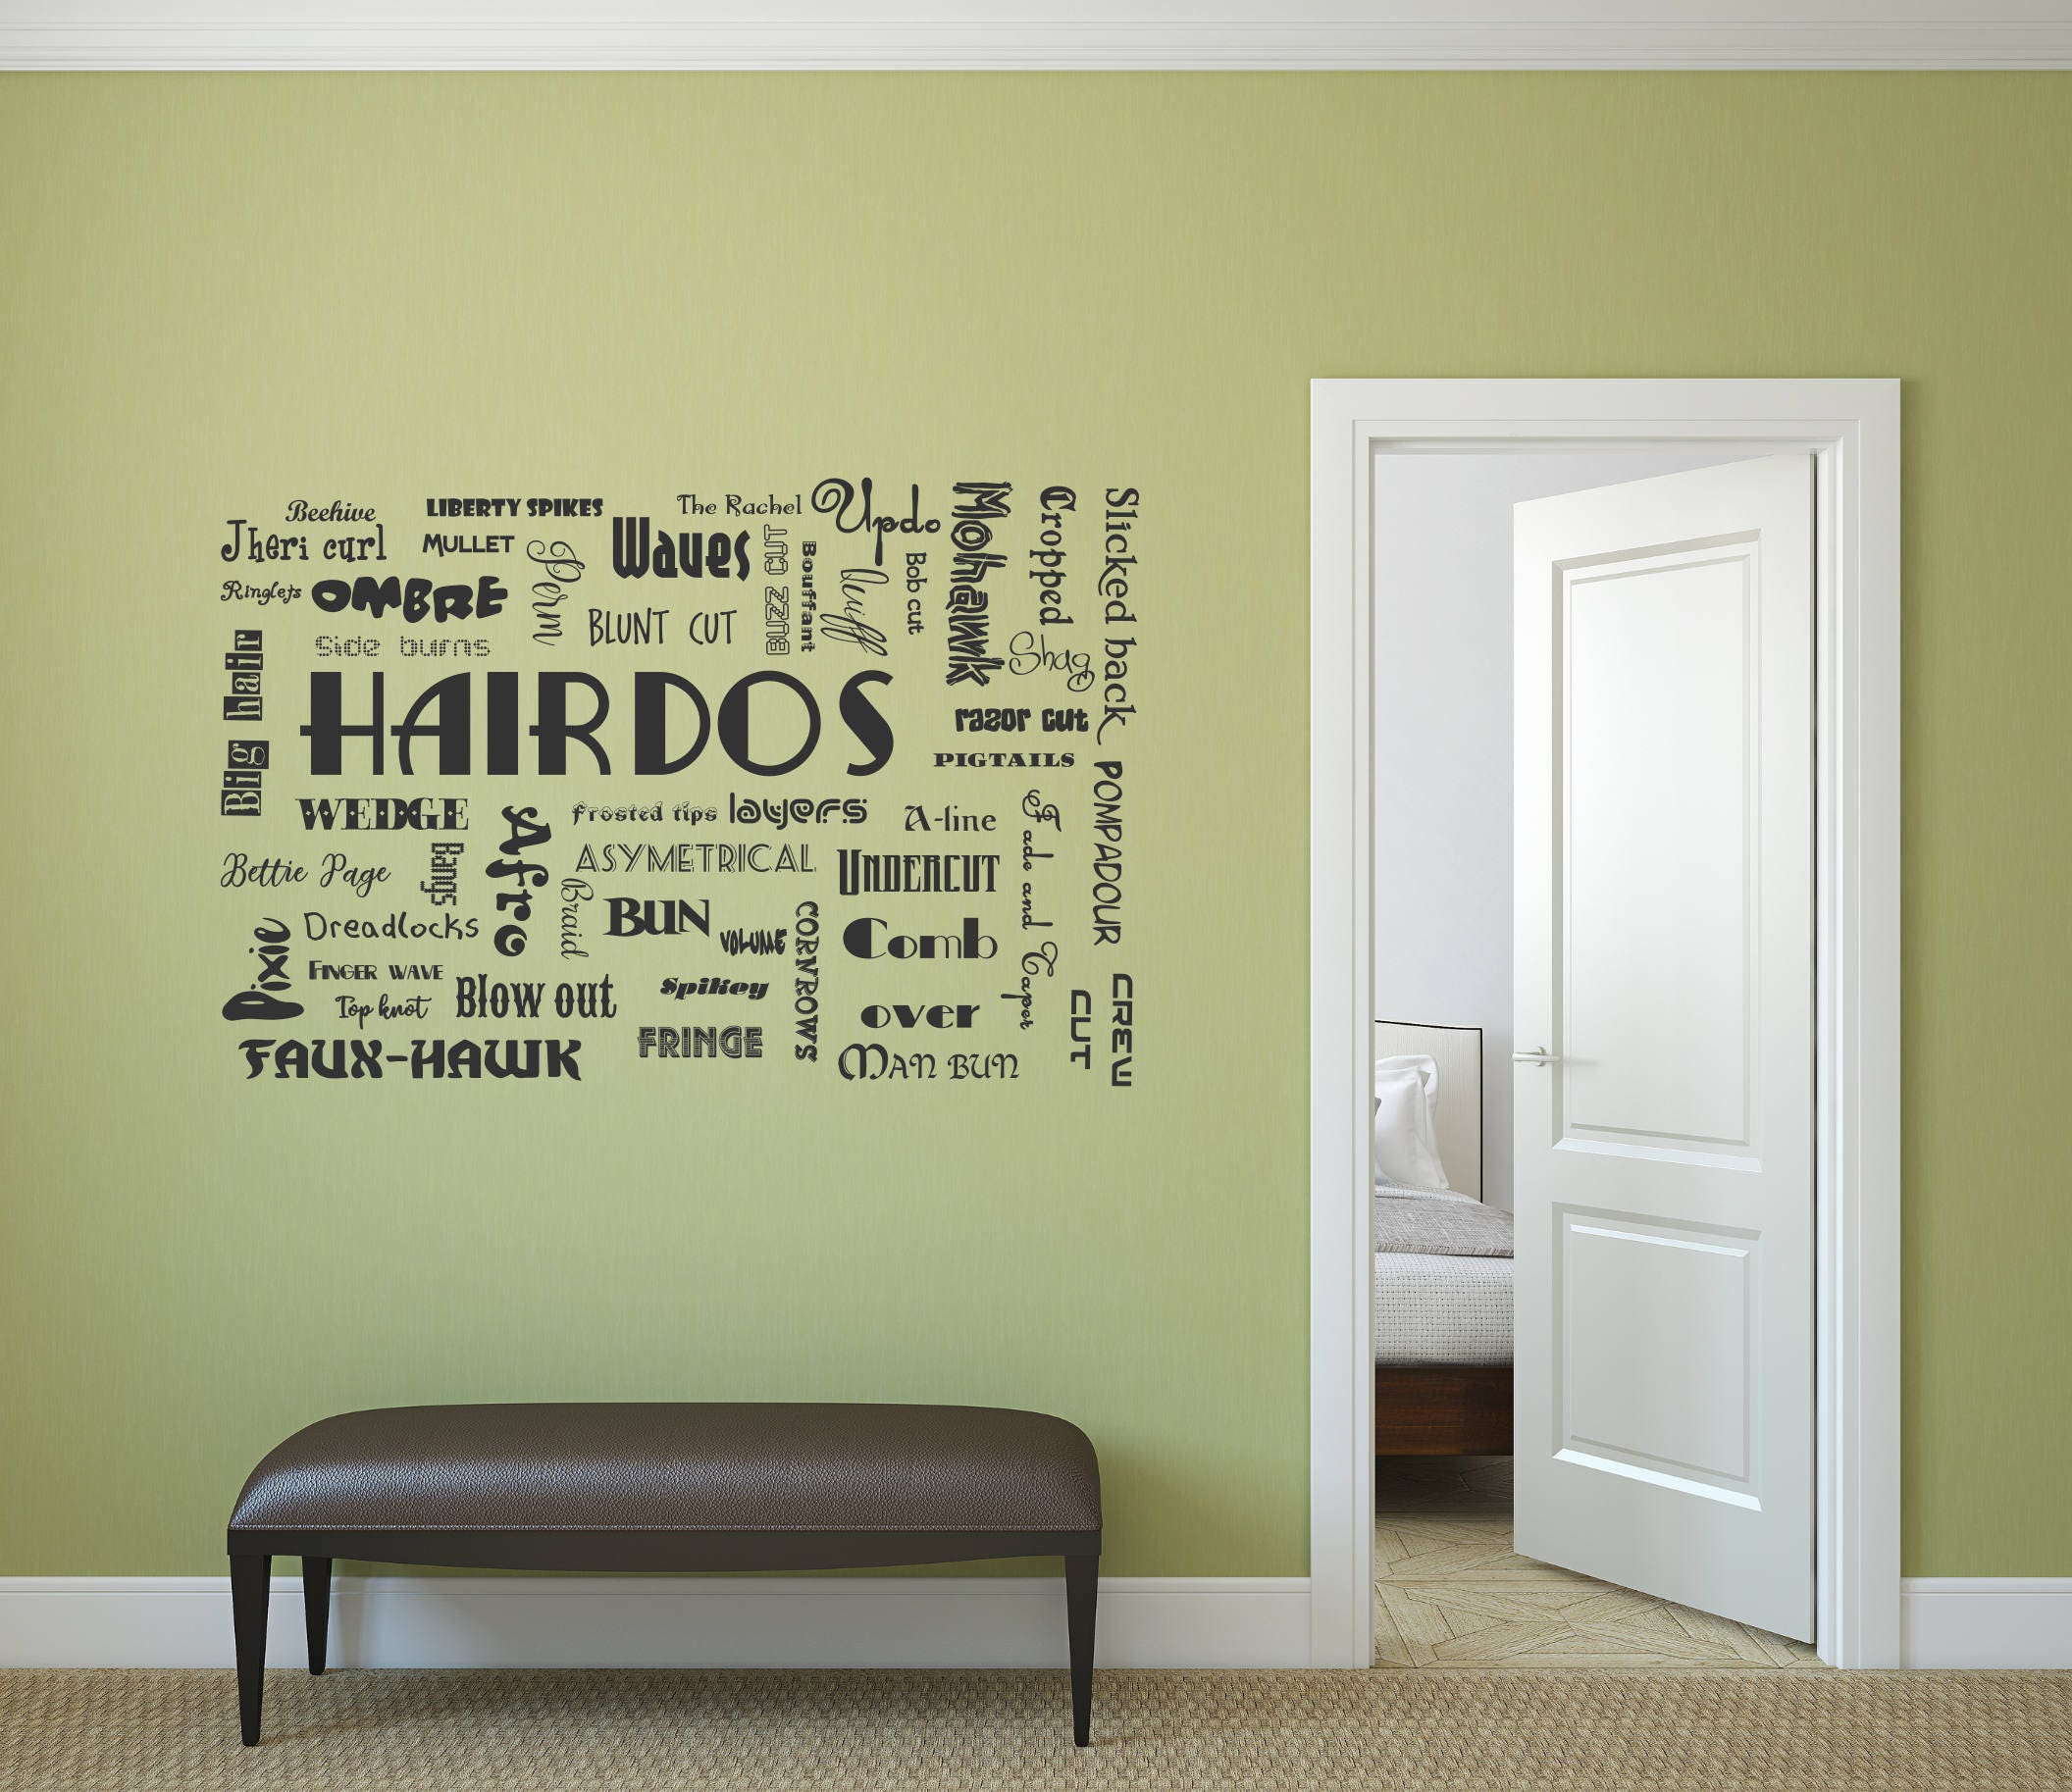 Enchanting Manchester United Wall Art Gift - The Wall Art ...